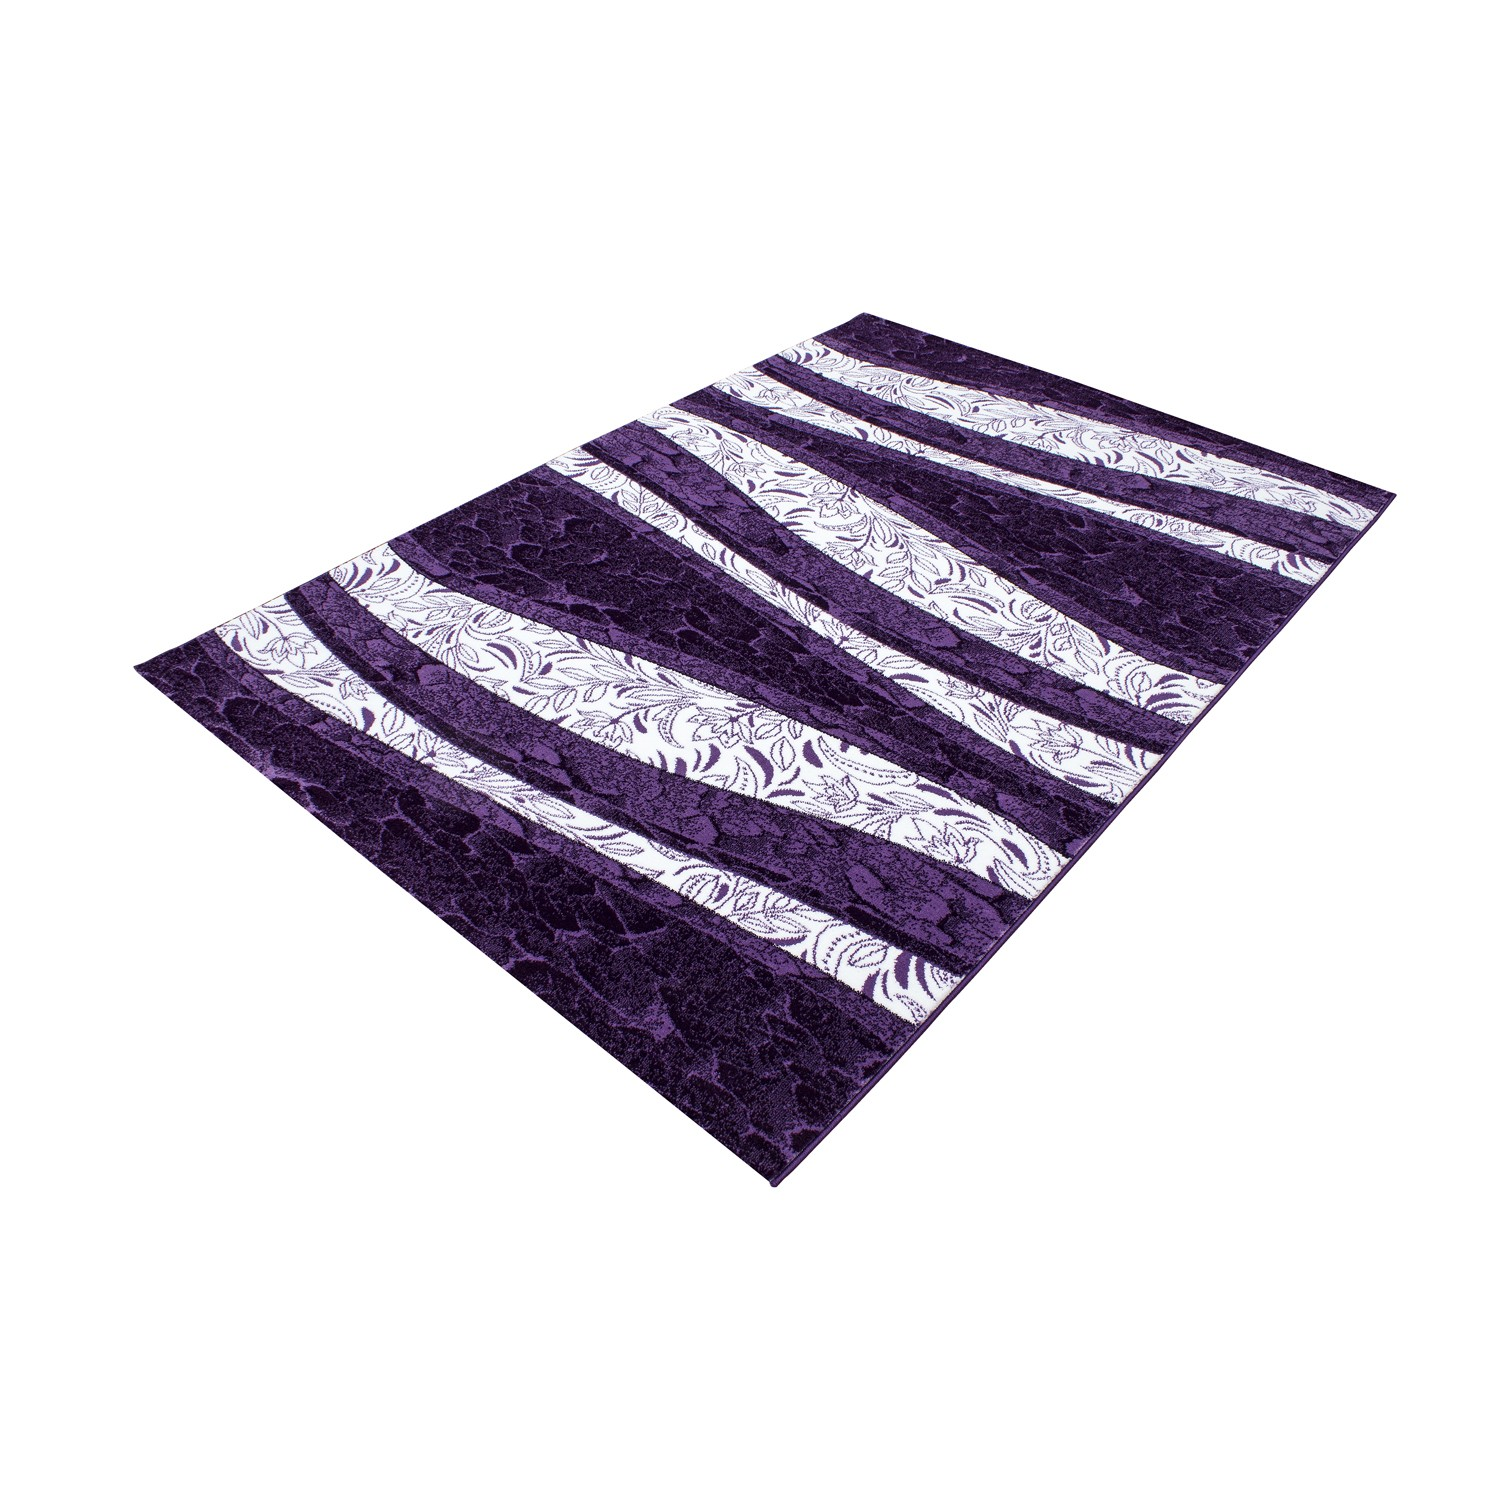 tapis design moderne coloris violette chic. Black Bedroom Furniture Sets. Home Design Ideas